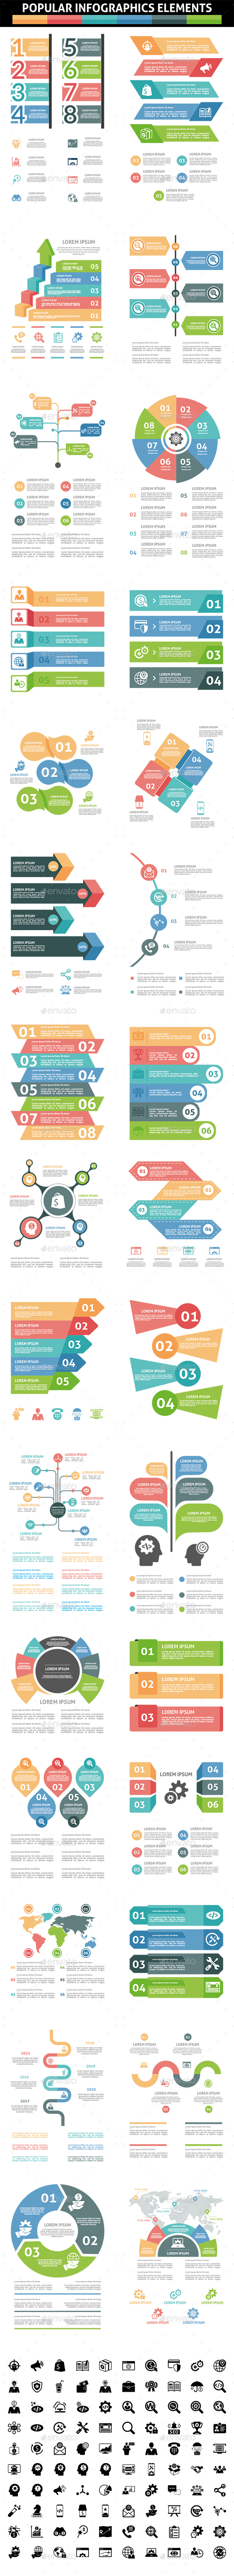 GraphicRiver Popular Infographic Elements 20682815